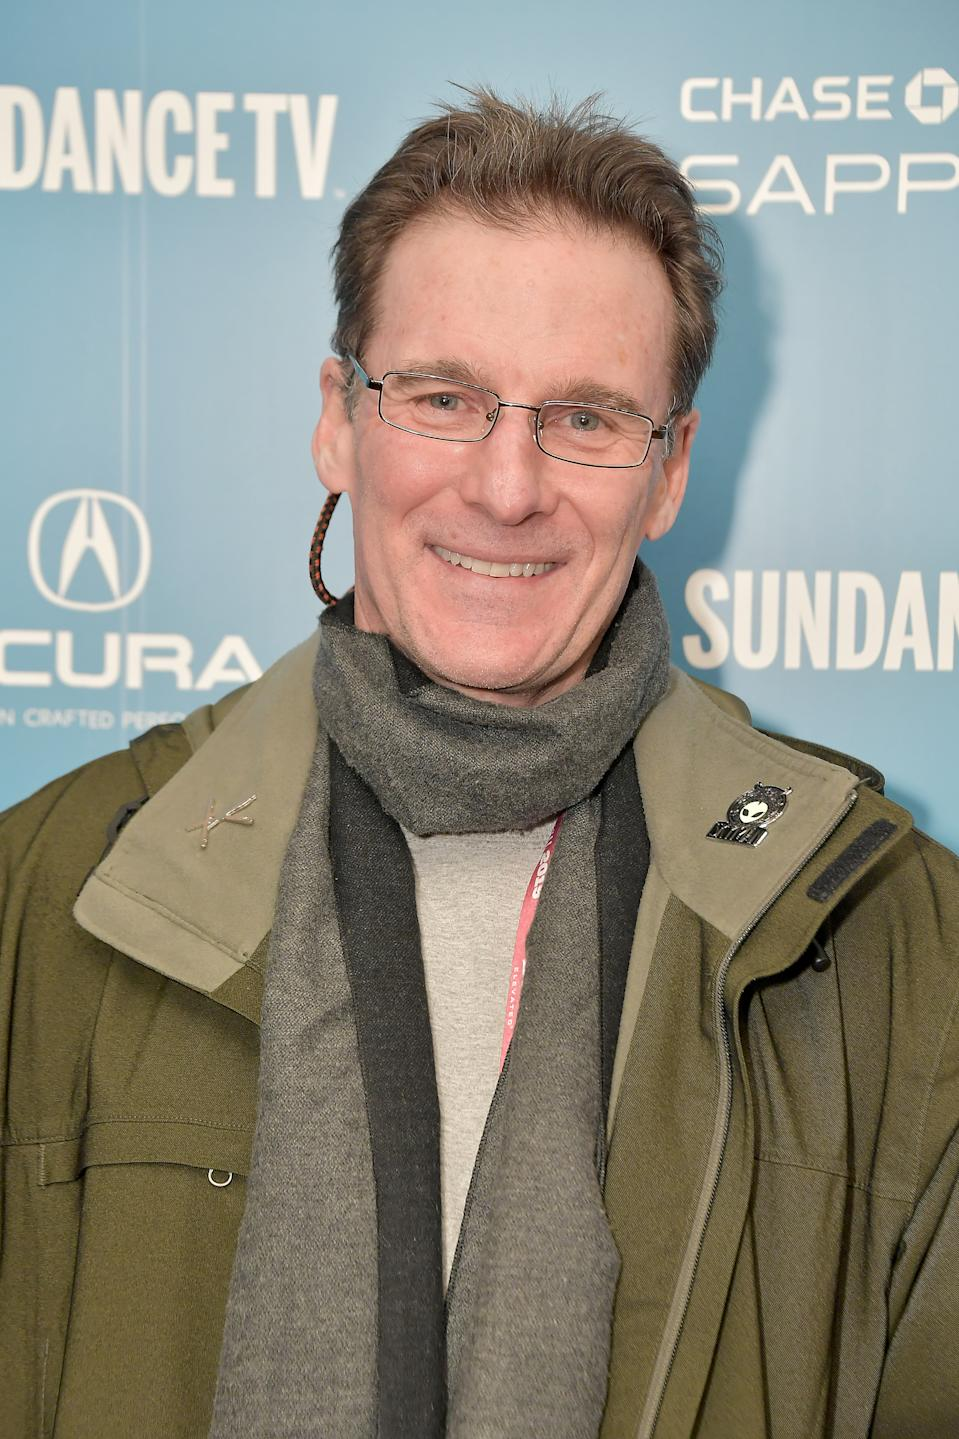 """PARK CITY, UTAH - FEBRUARY 01: Director Daniel Myrick attends the 20th anniversary special screening of the """"The Blair Witch Project"""" during the 2019 Sundance Film Festival at the Egyptian Theatre on February 01, 2019 in Park City, Utah. (Photo by Michael Loccisano/Getty Images)"""